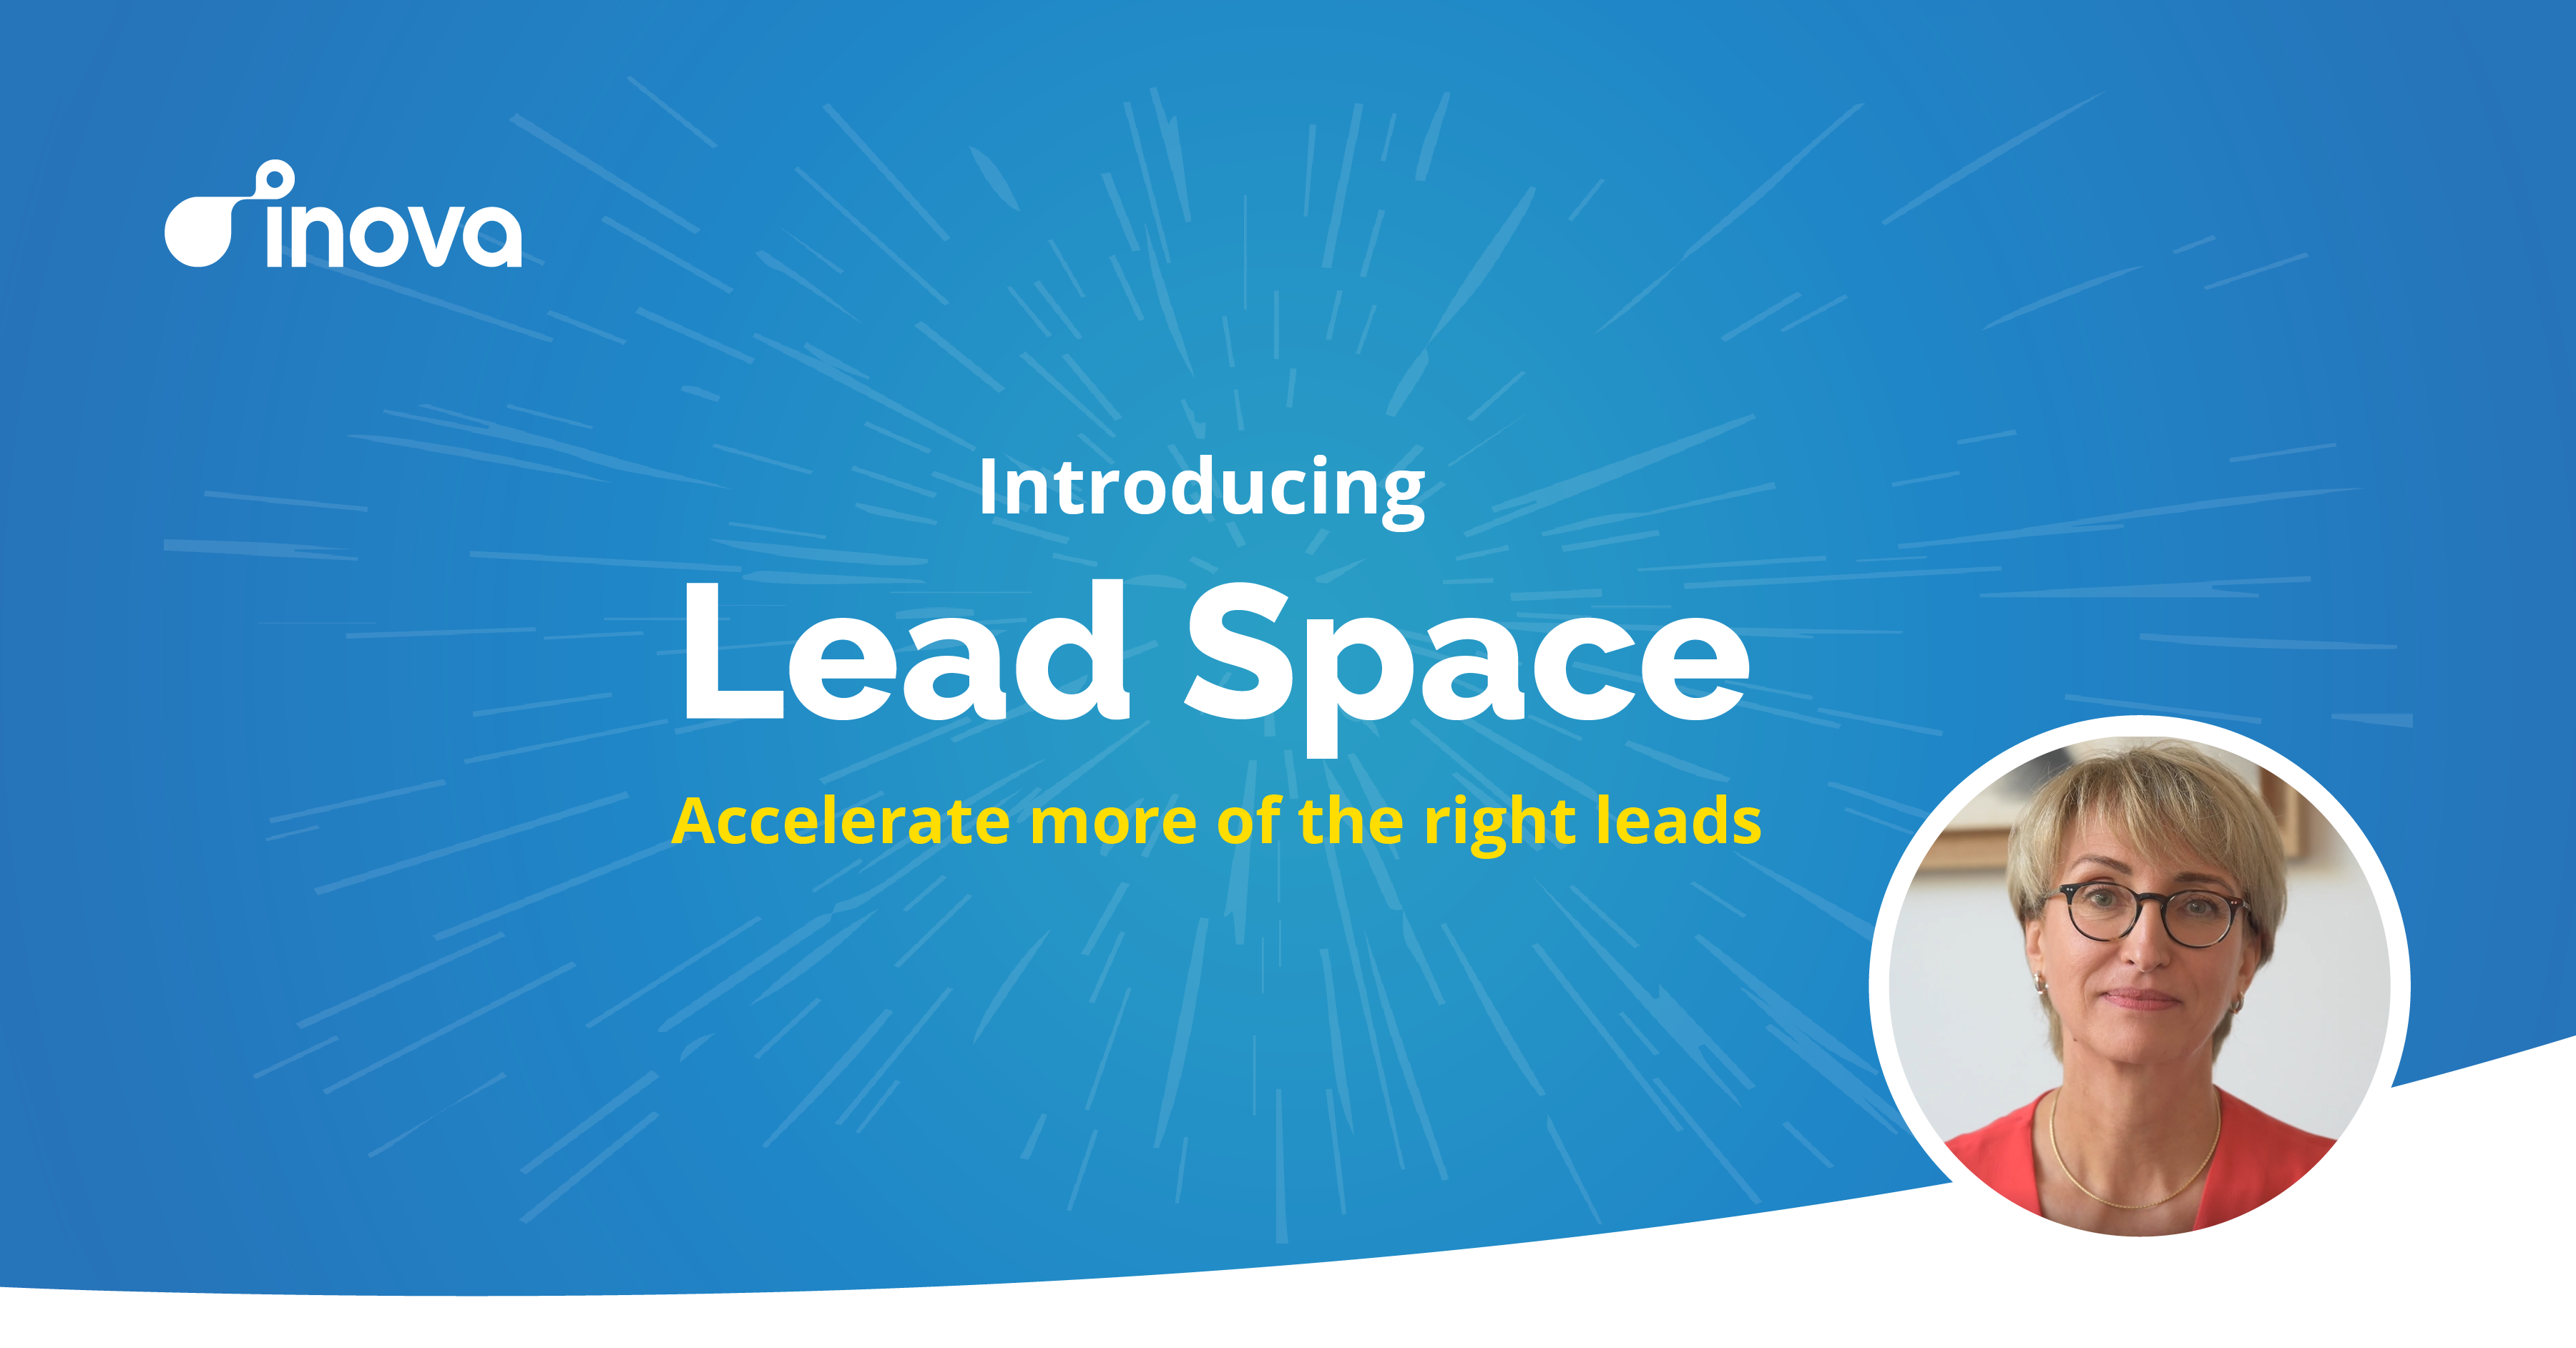 Introducing Lead Space